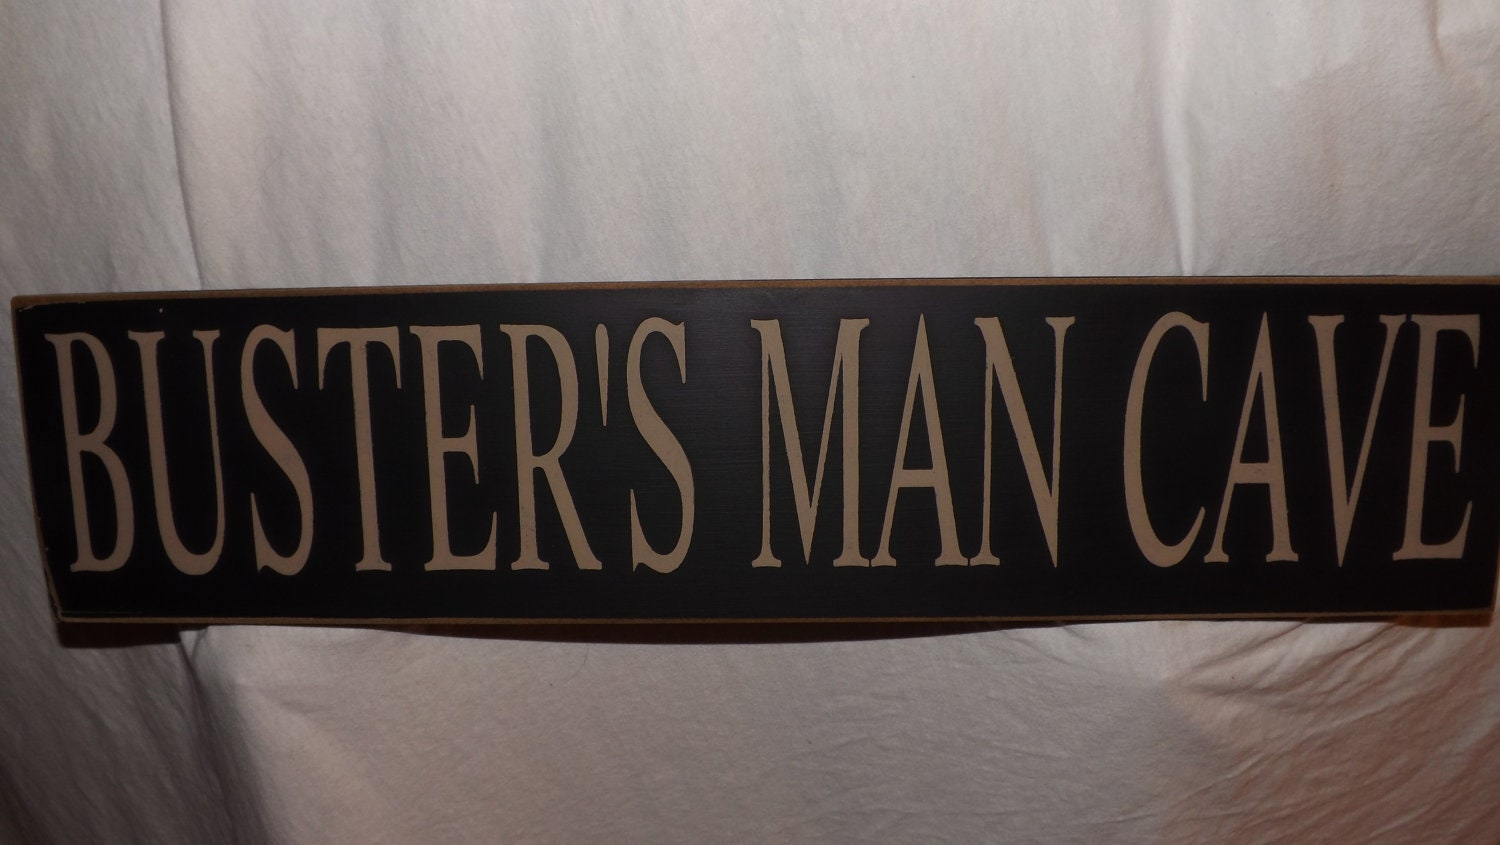 Man Cave Signs Wooden : Create your own wood sign add a name man cave by oakridgeprims